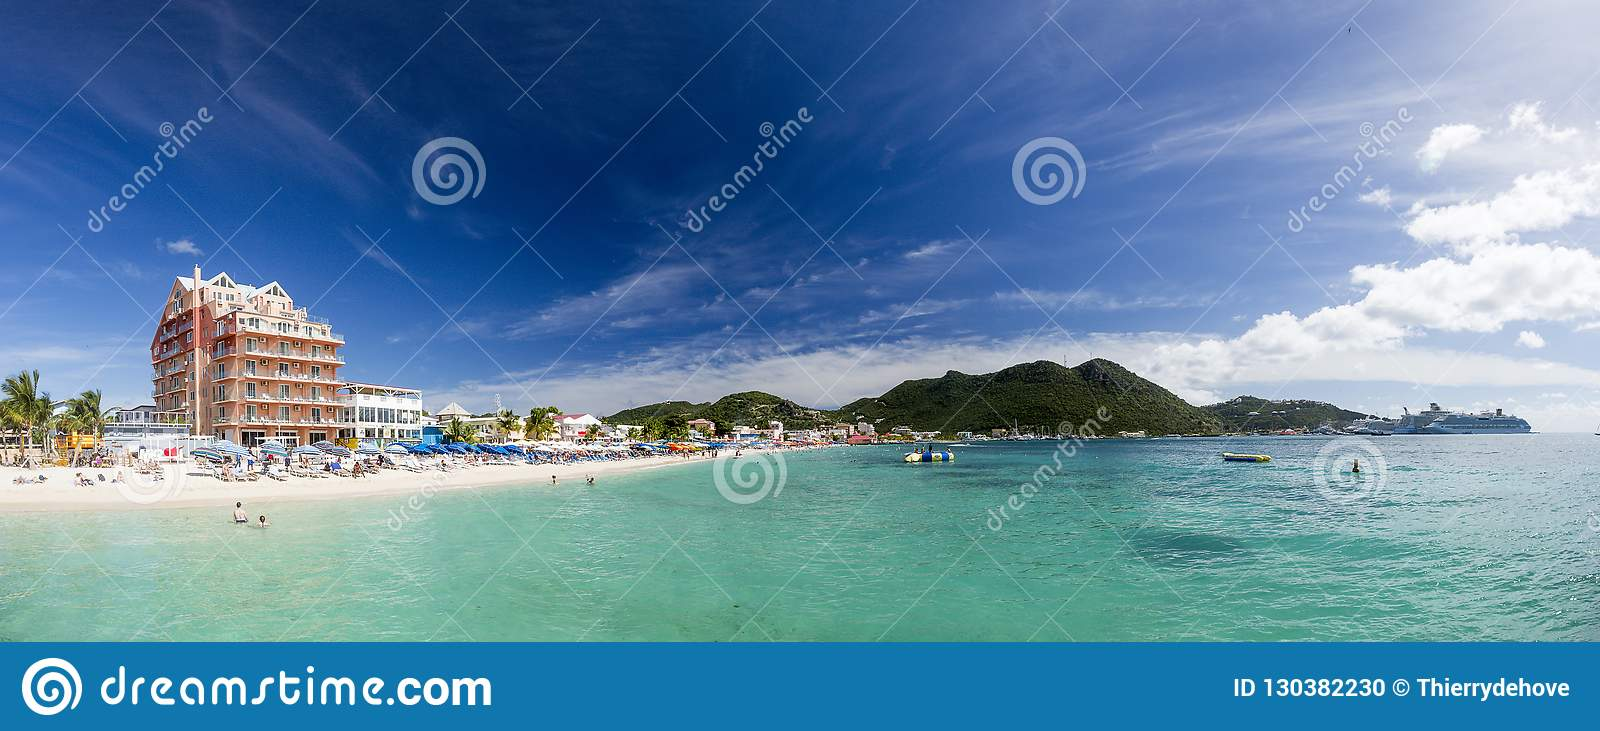 Panoramic of Saint Martin, Sint Maarten: Caribbean Beaches